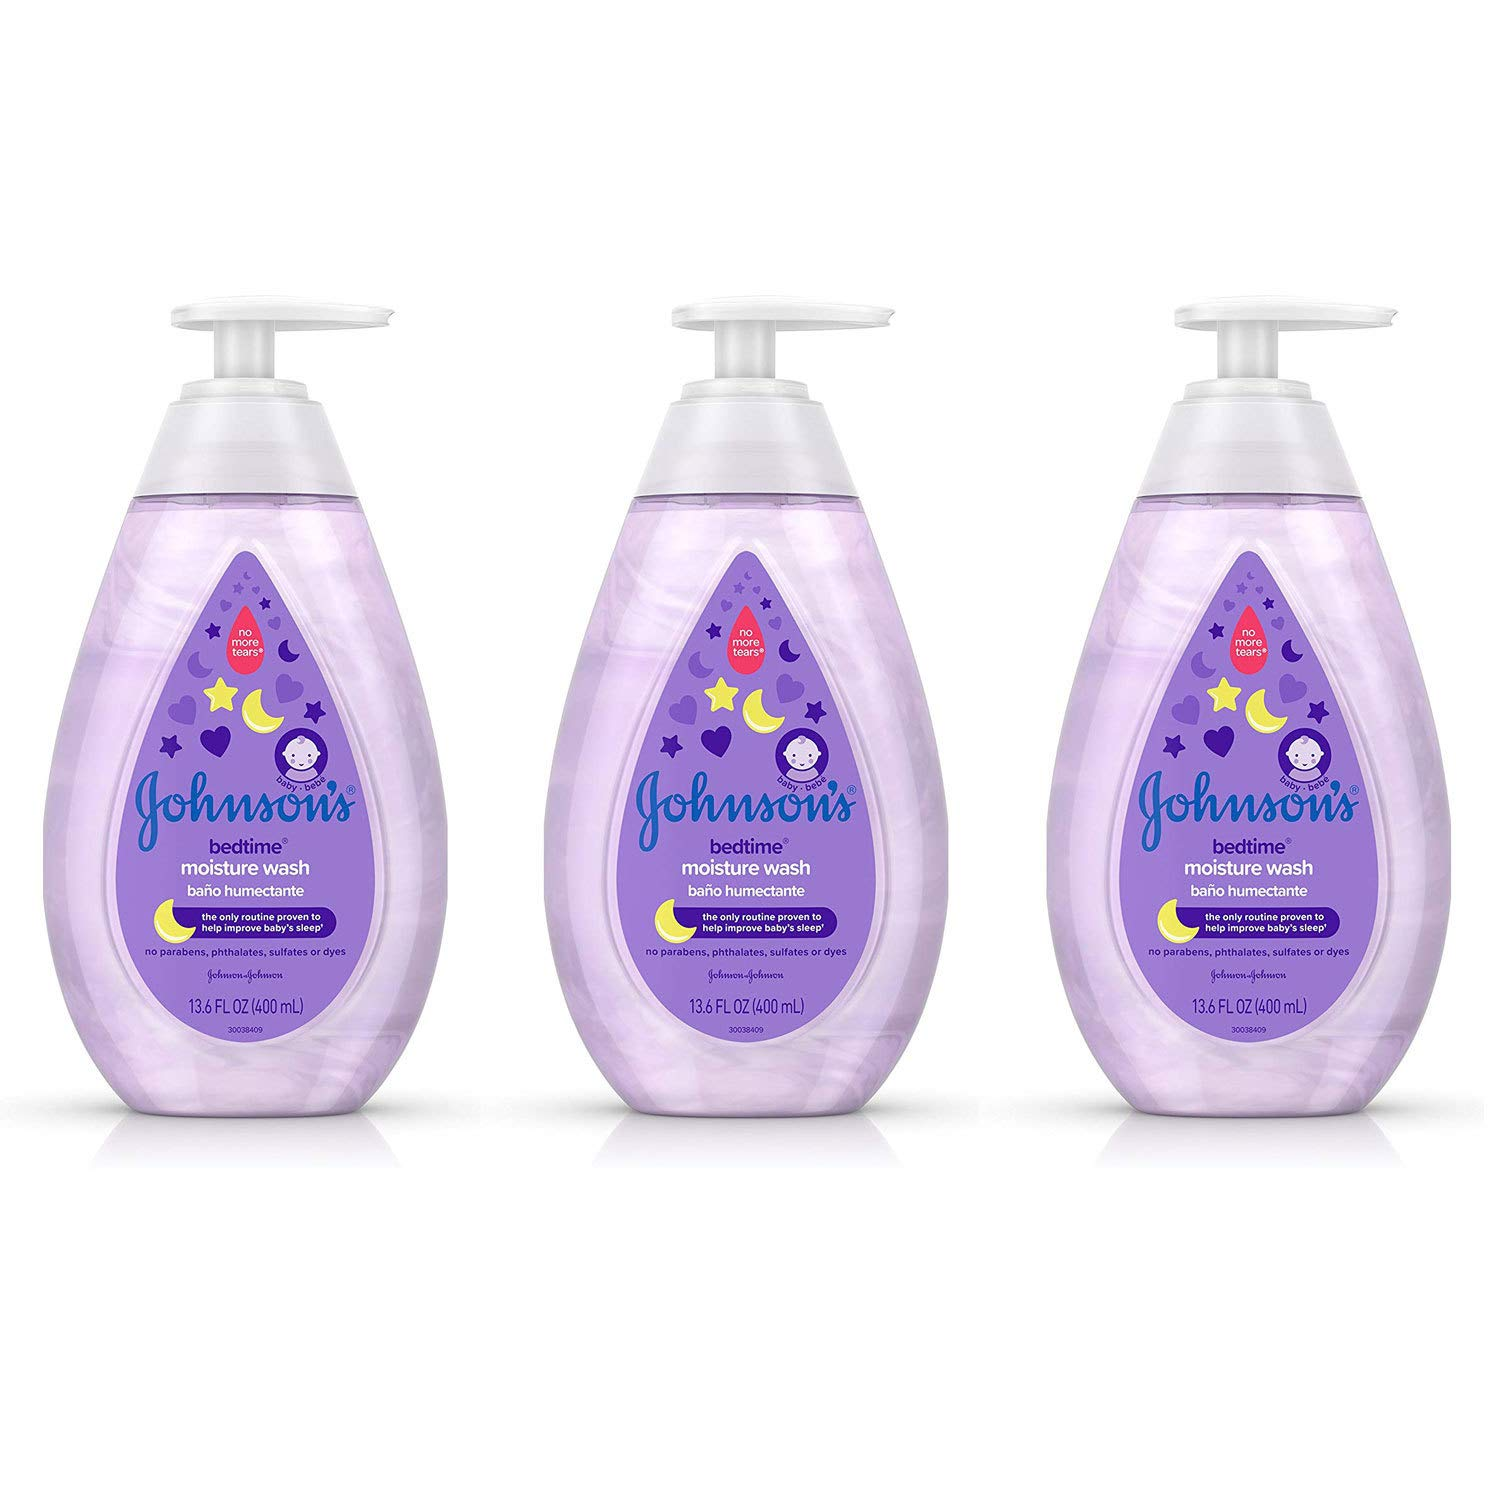 Johnson's Bedtime Baby Moisture Wash with Coconut Oil, Washes Away 99.9% of Germs, Tear-Free Night Time Bath Wash…